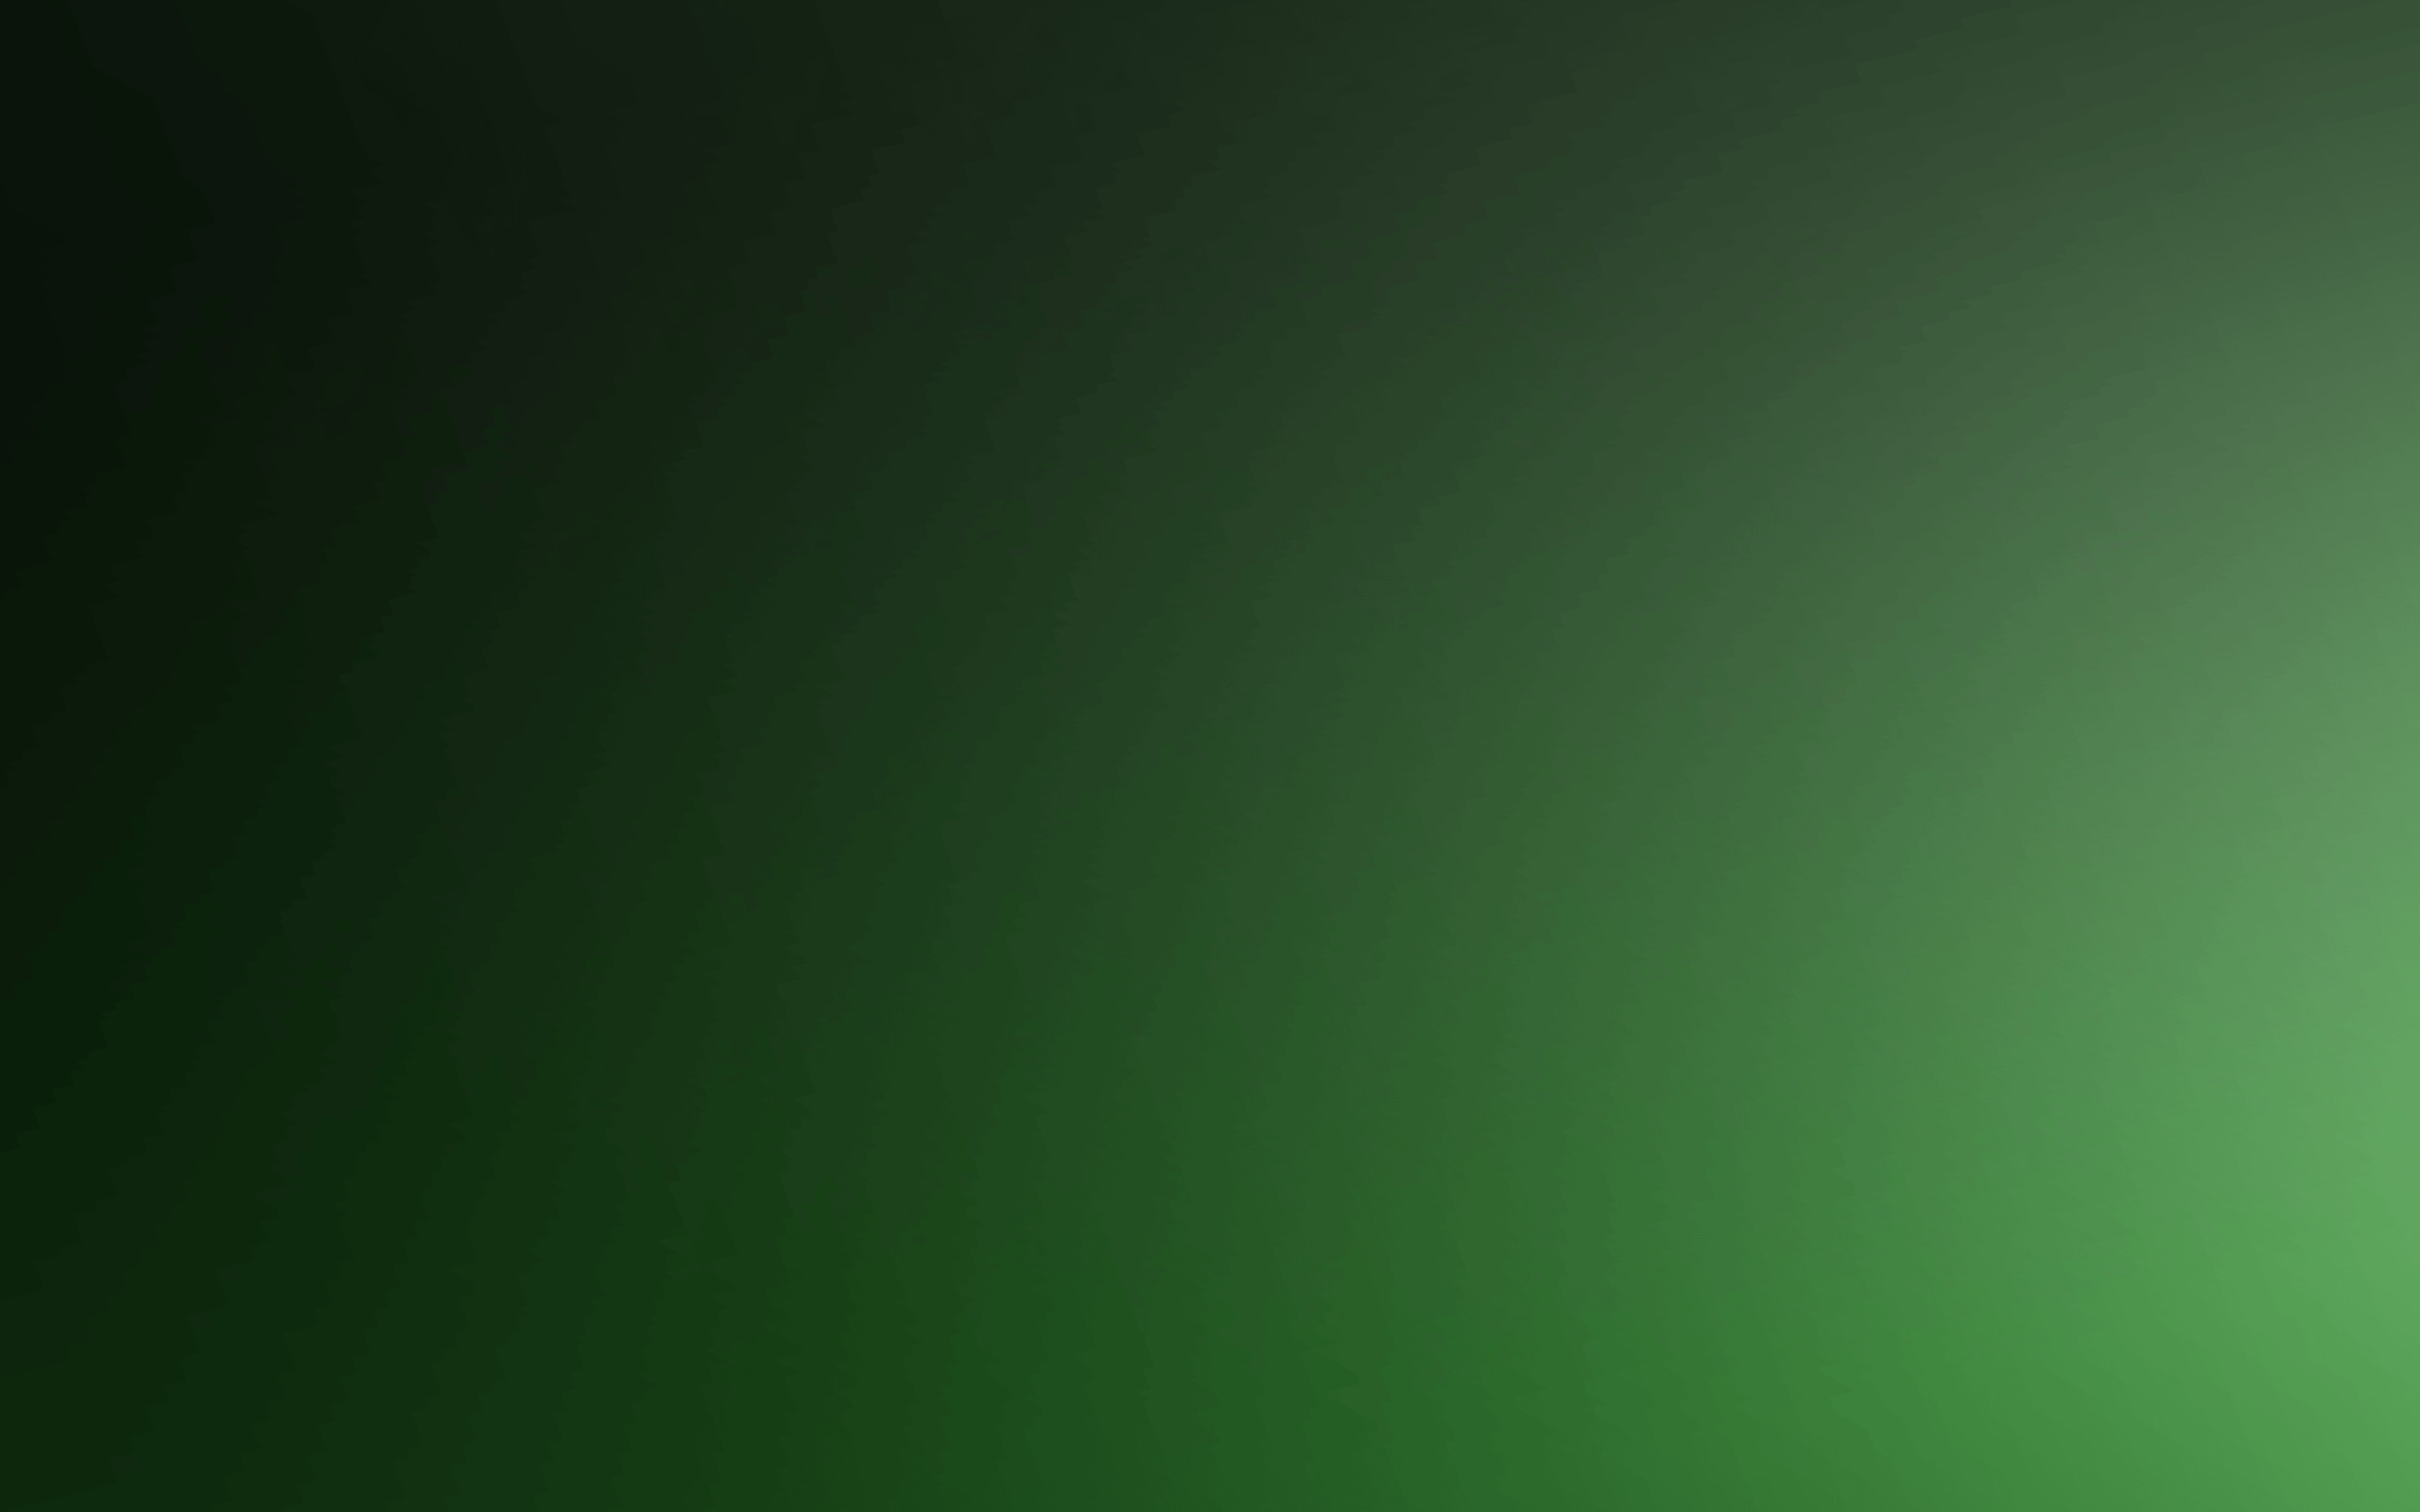 2560x1600 Dark Green Backgrounds - Wallpaper Cave